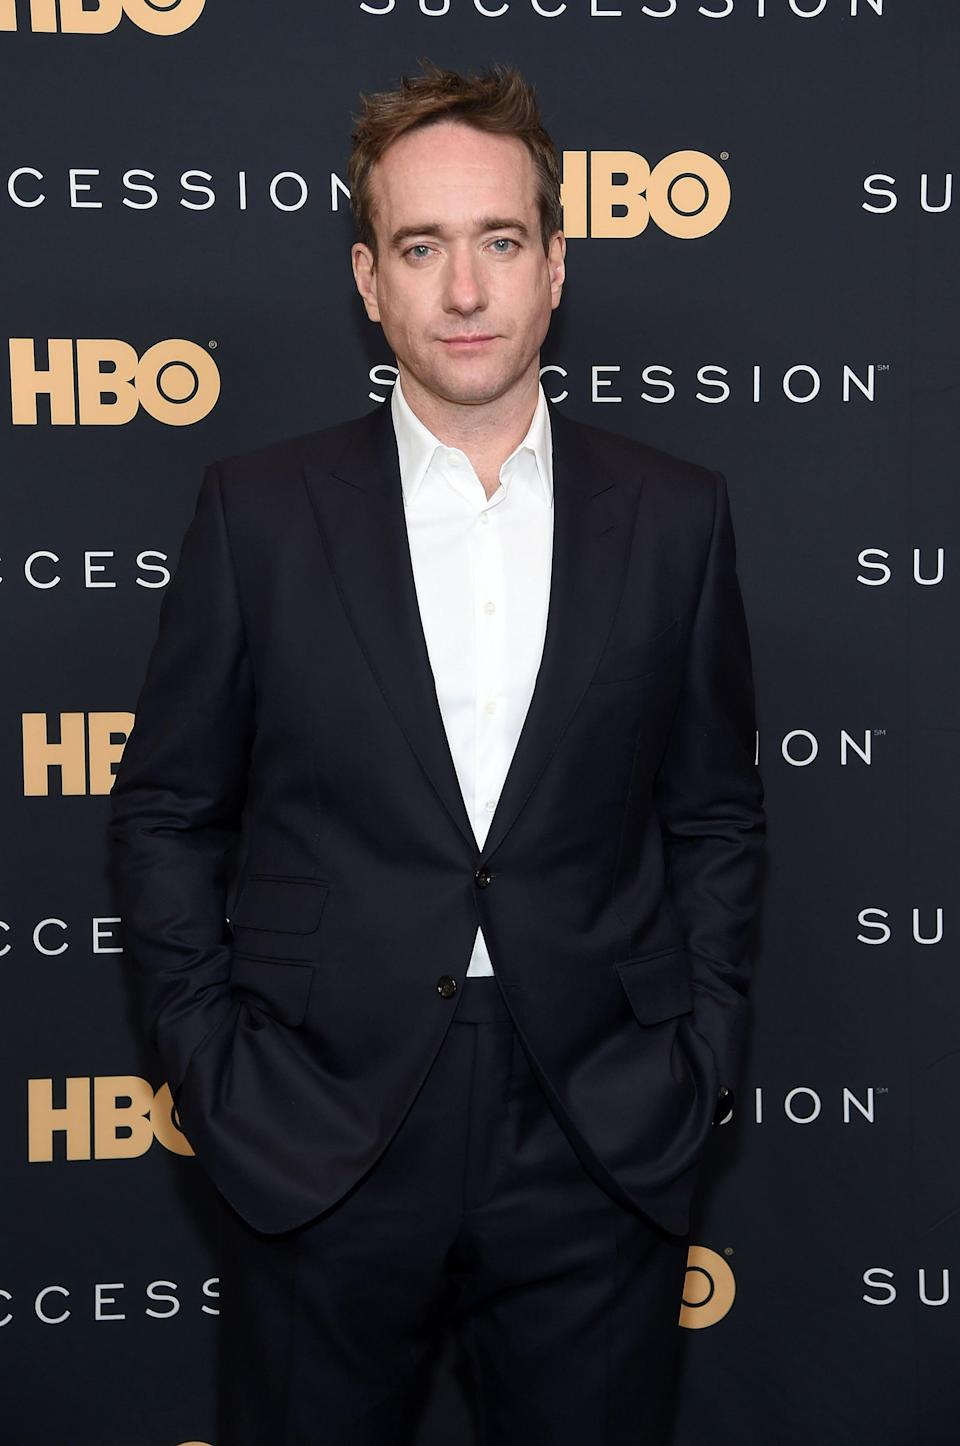 <p>We'll be seeing more of Macfadyen in his role as Shiv's husband, Tom.</p>